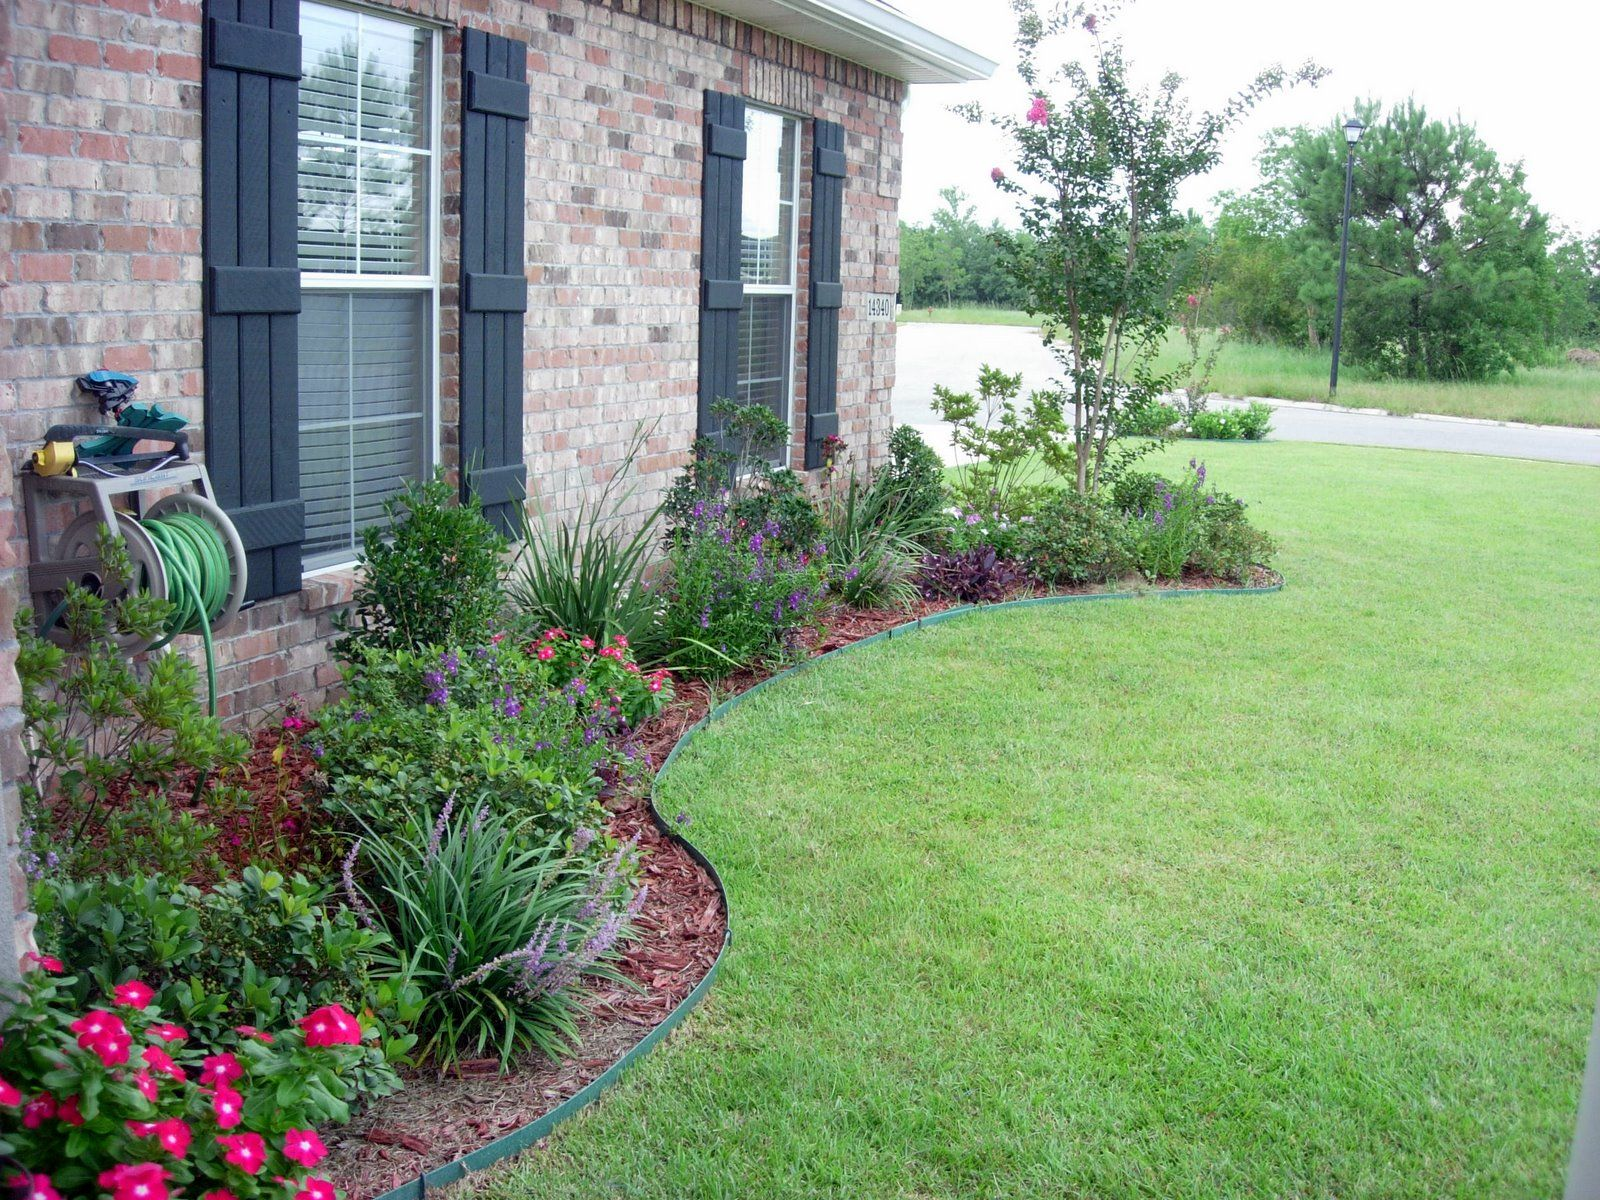 Front house garden plan ideas - Flower Bed Designs For Front Of House Use Shrubs Small Trees To Form The